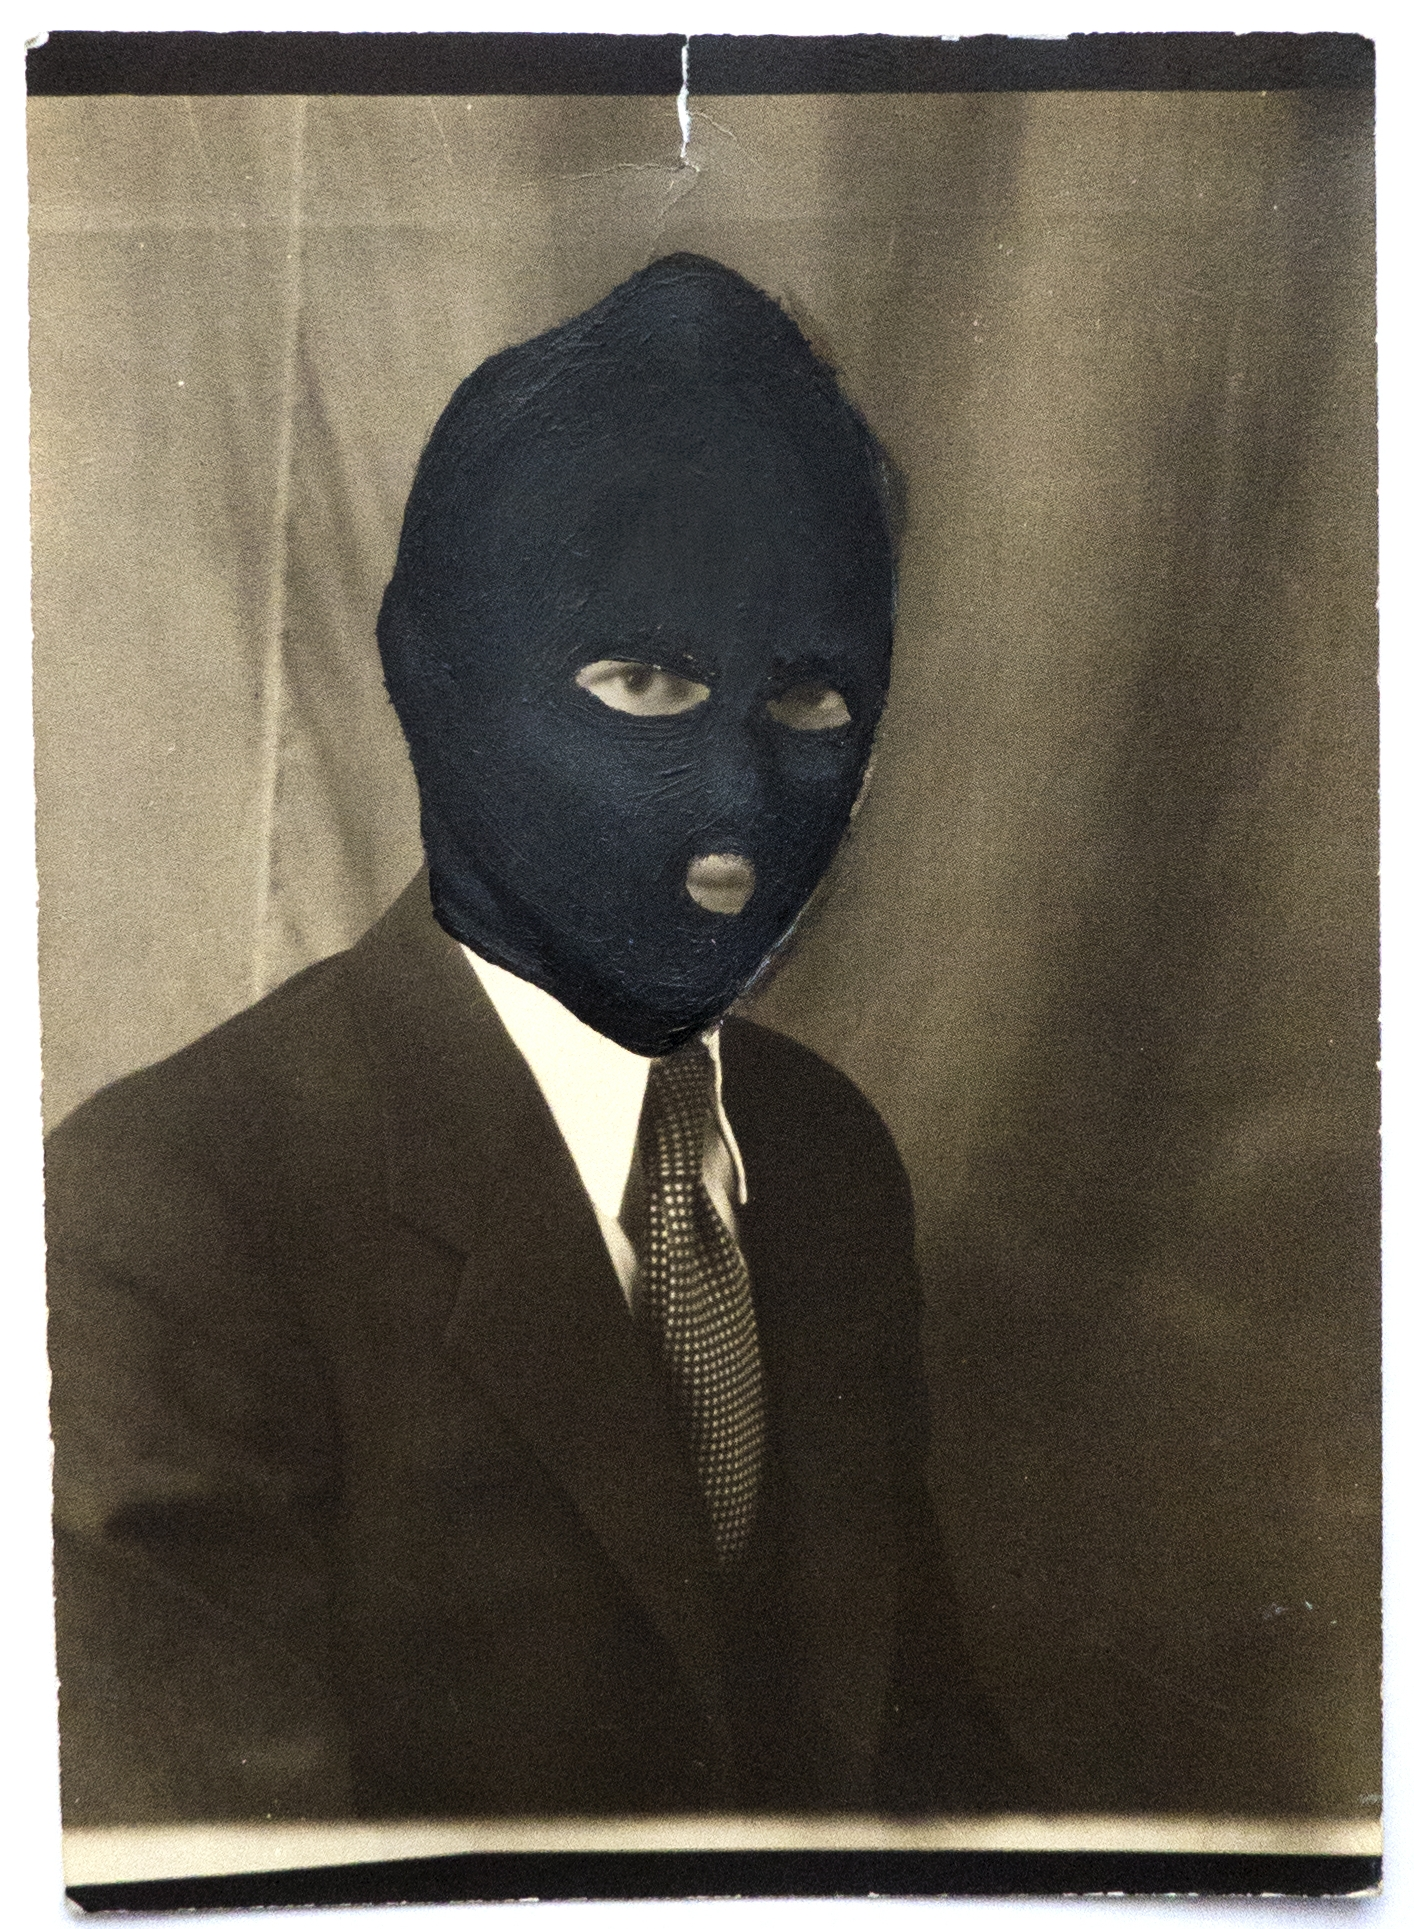 - |PORTRAIT OF A VANDAL| MASKED MEMORIESoil on vintage photograph